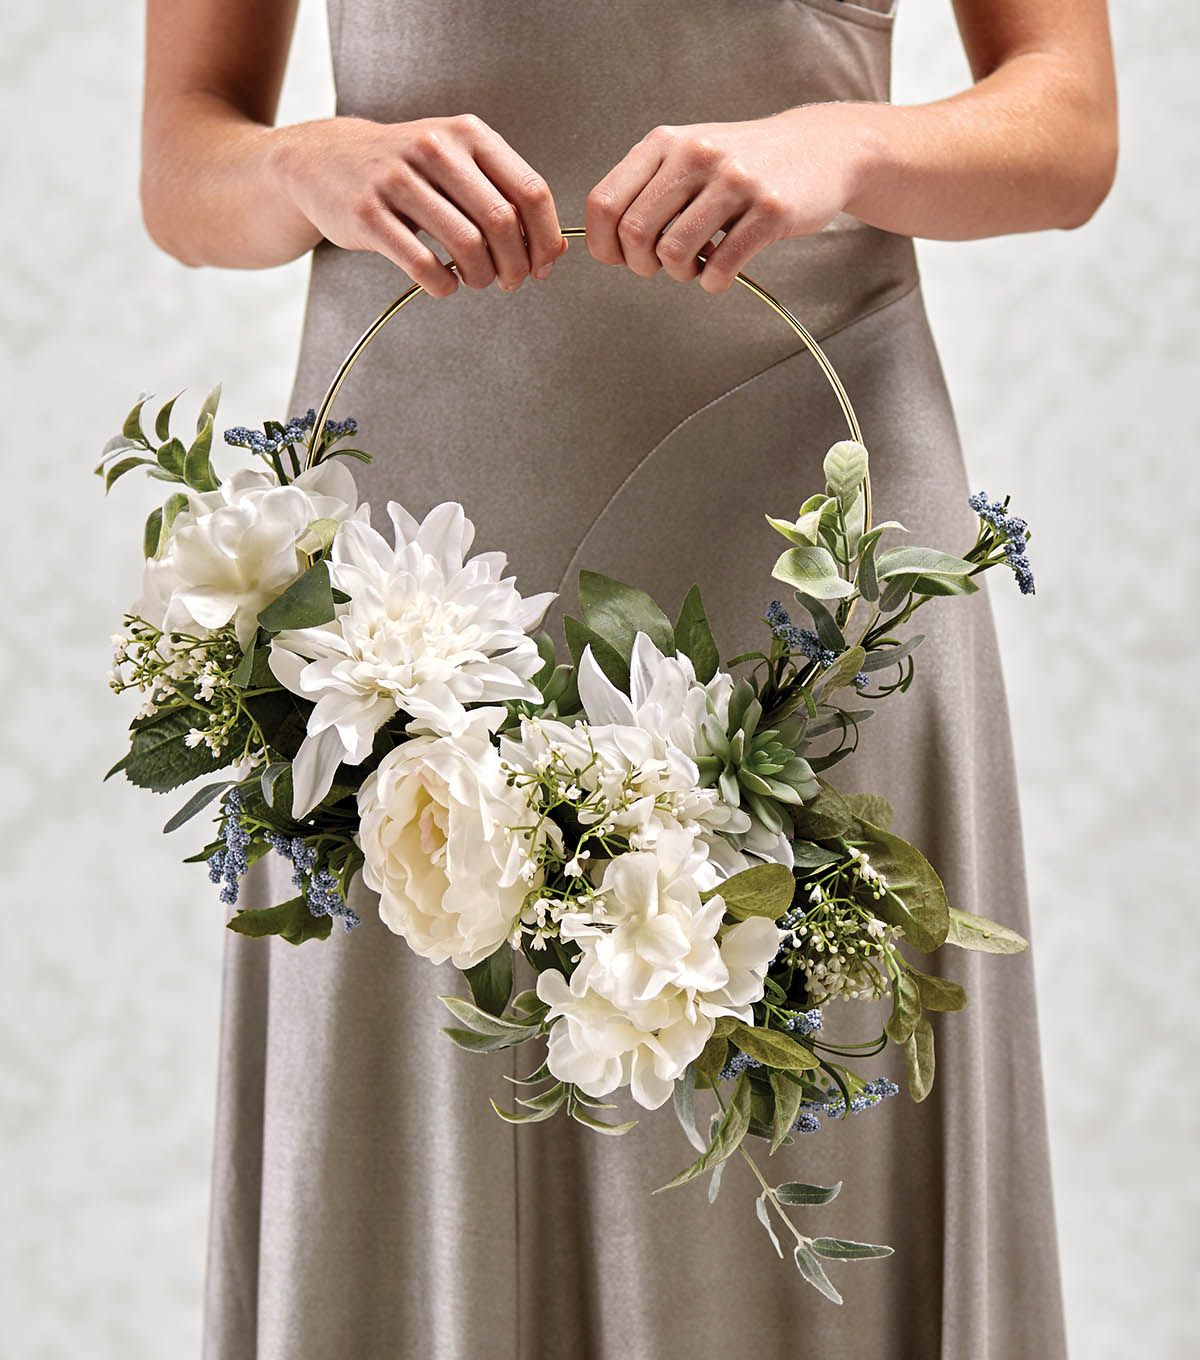 How To Make A Metal Ring Bouquet Bridesmaid Wreath Wedding